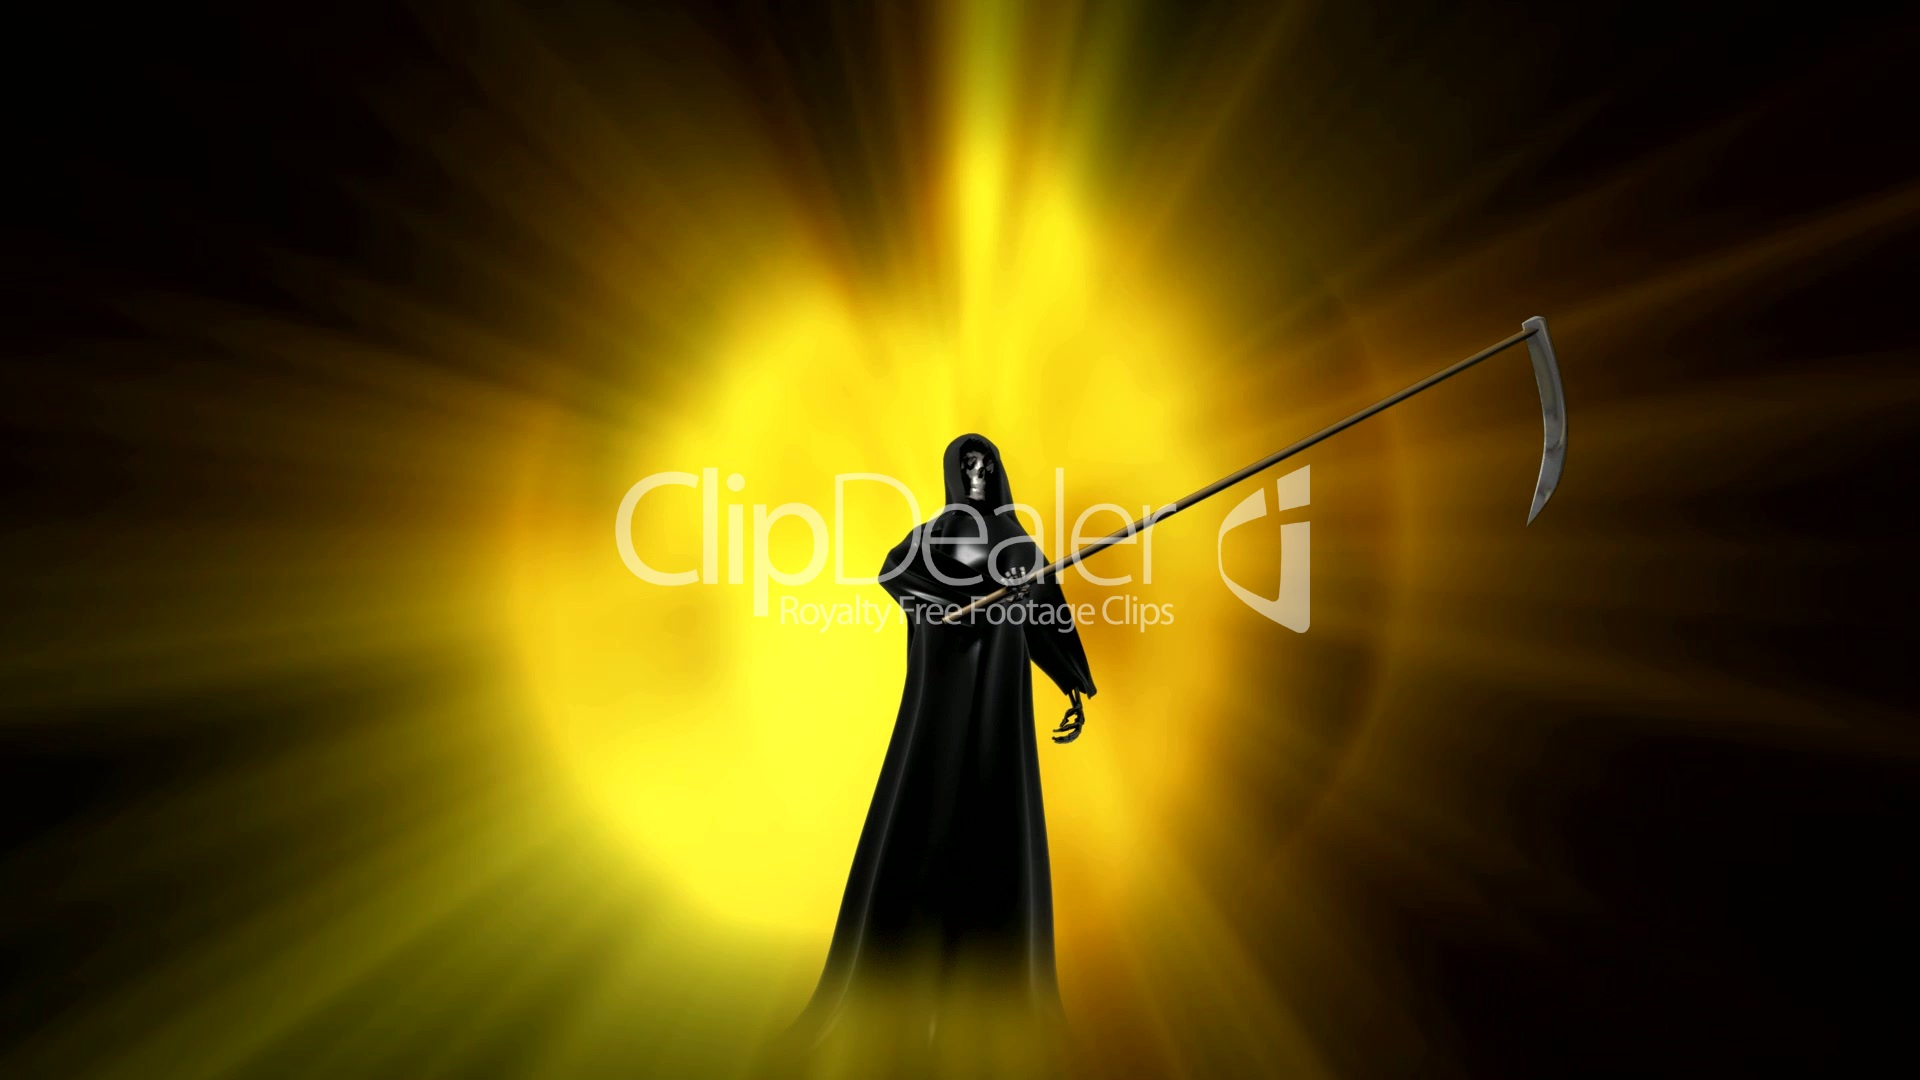 Grim Reaper HD1080: Royalty-free video and stock footage